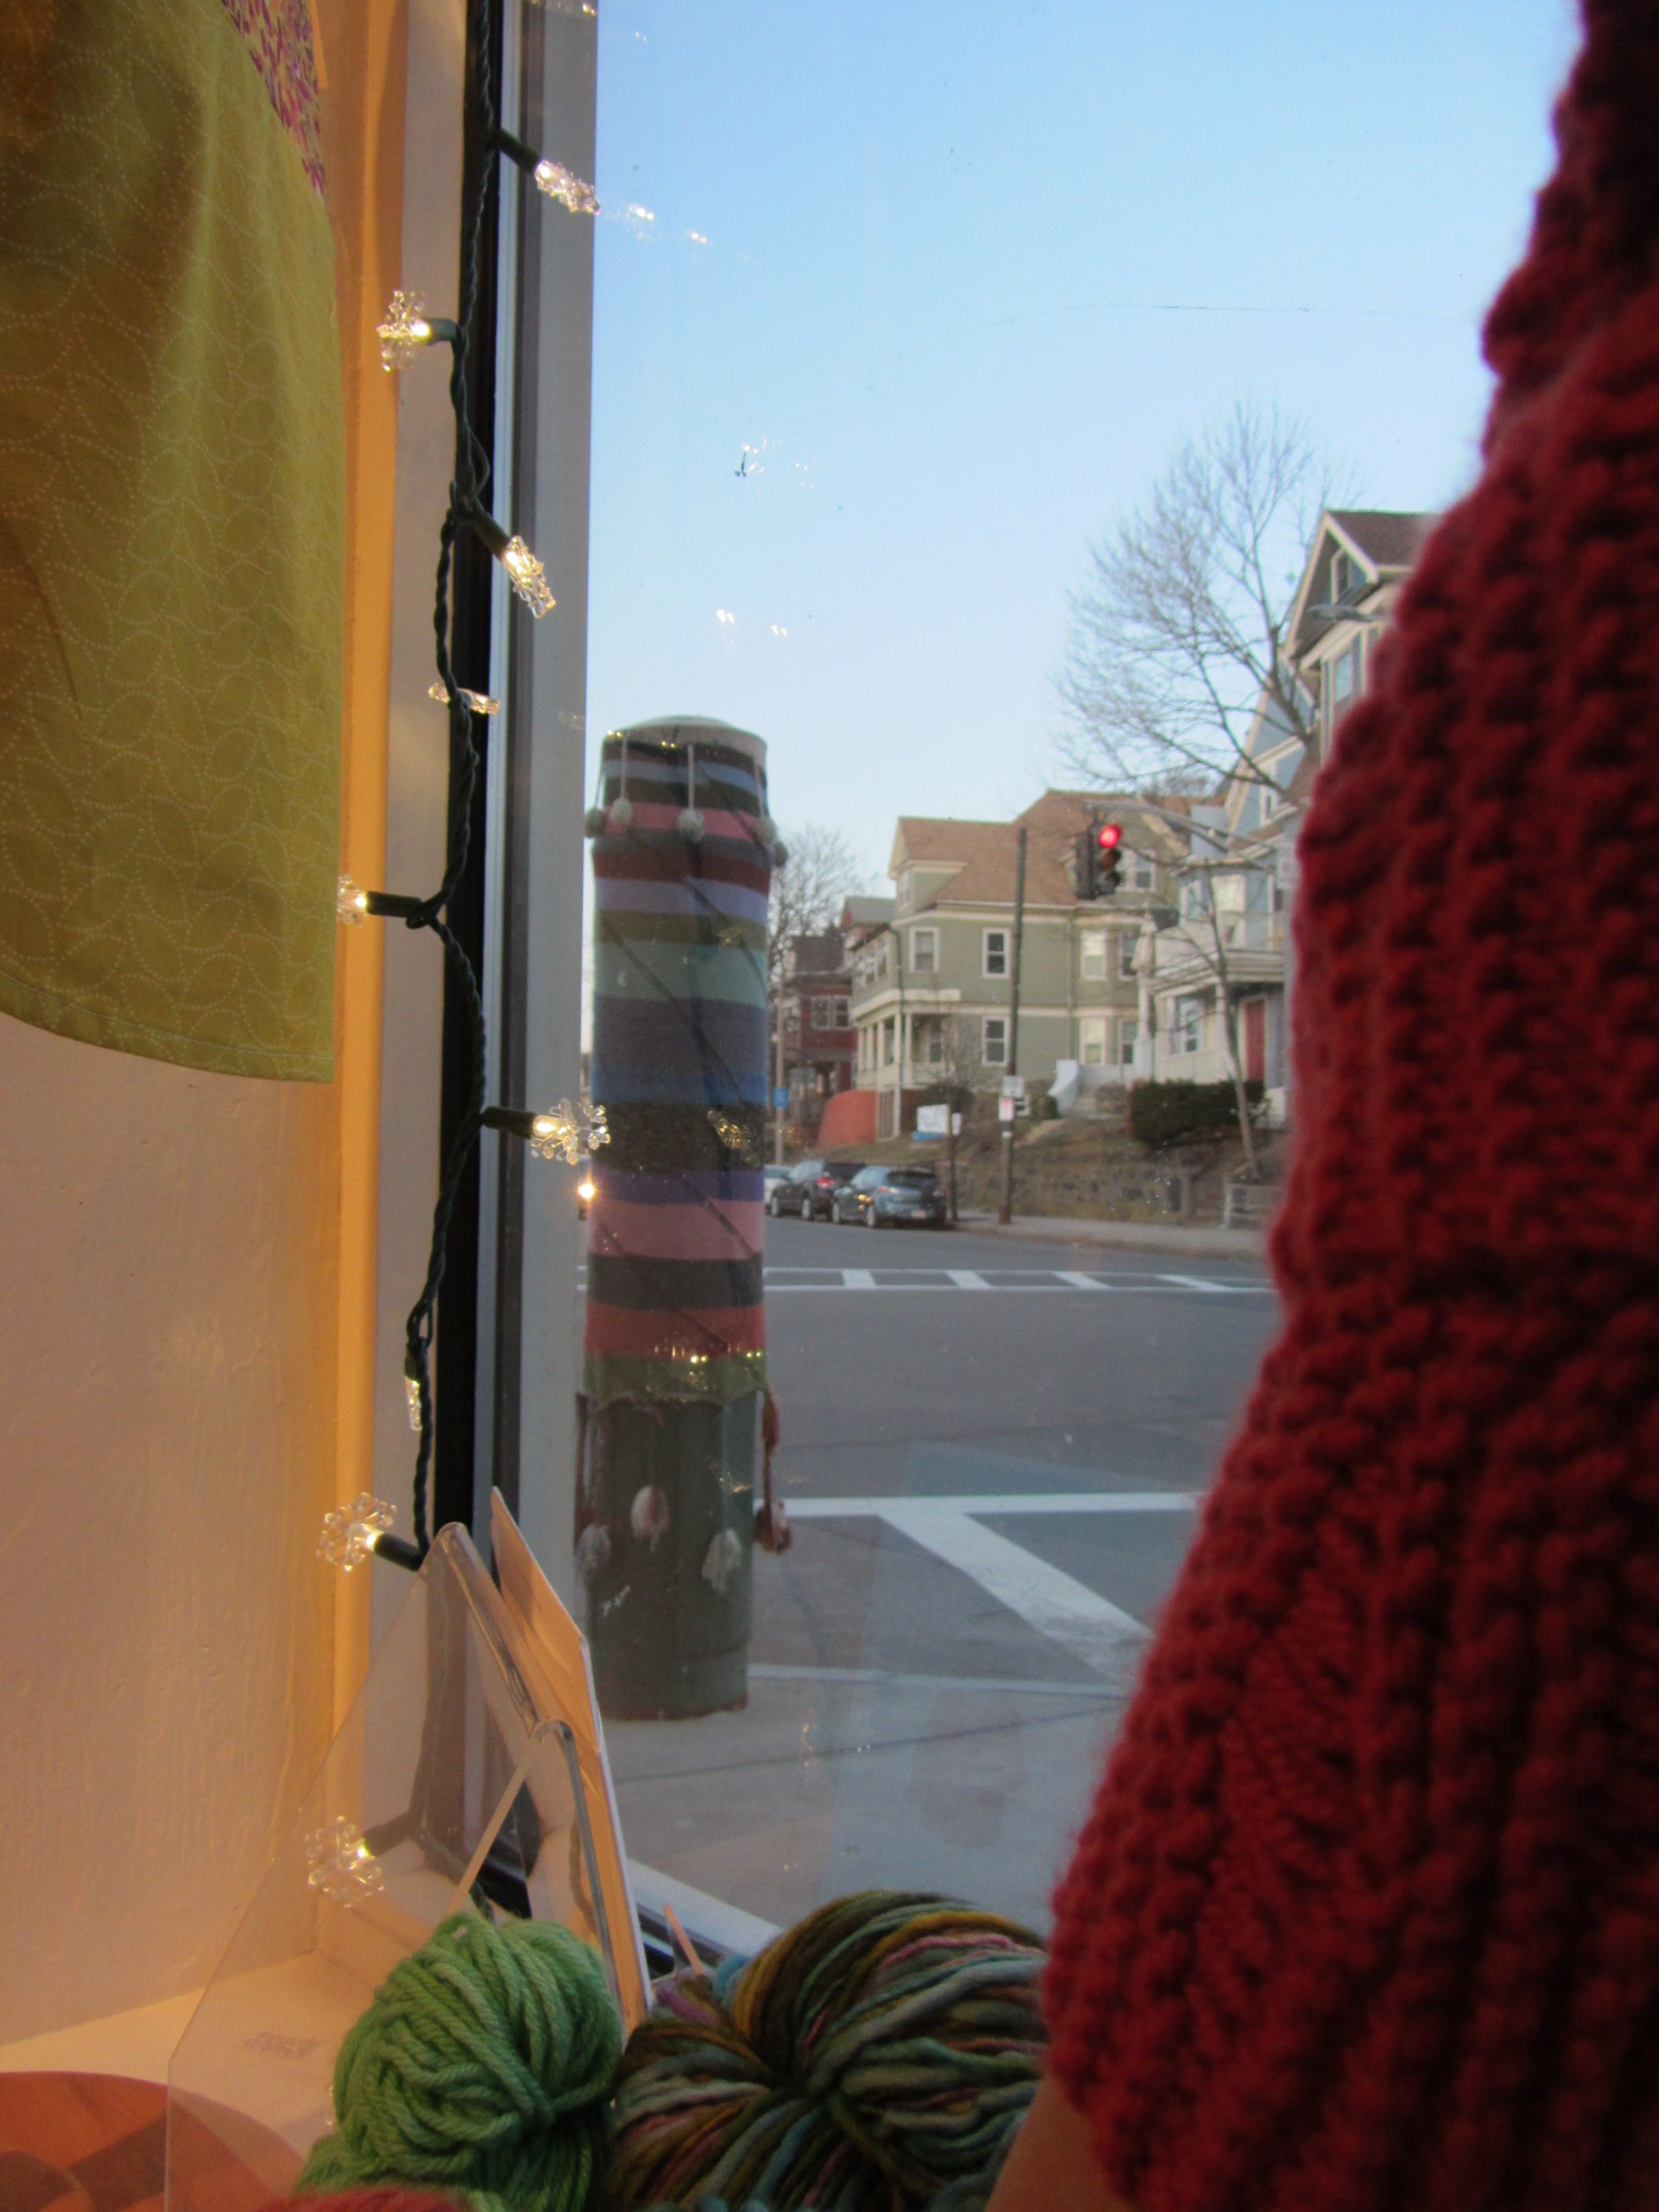 Knitting window decoration. The photo comes from the best knitting store of Boston, in JP.